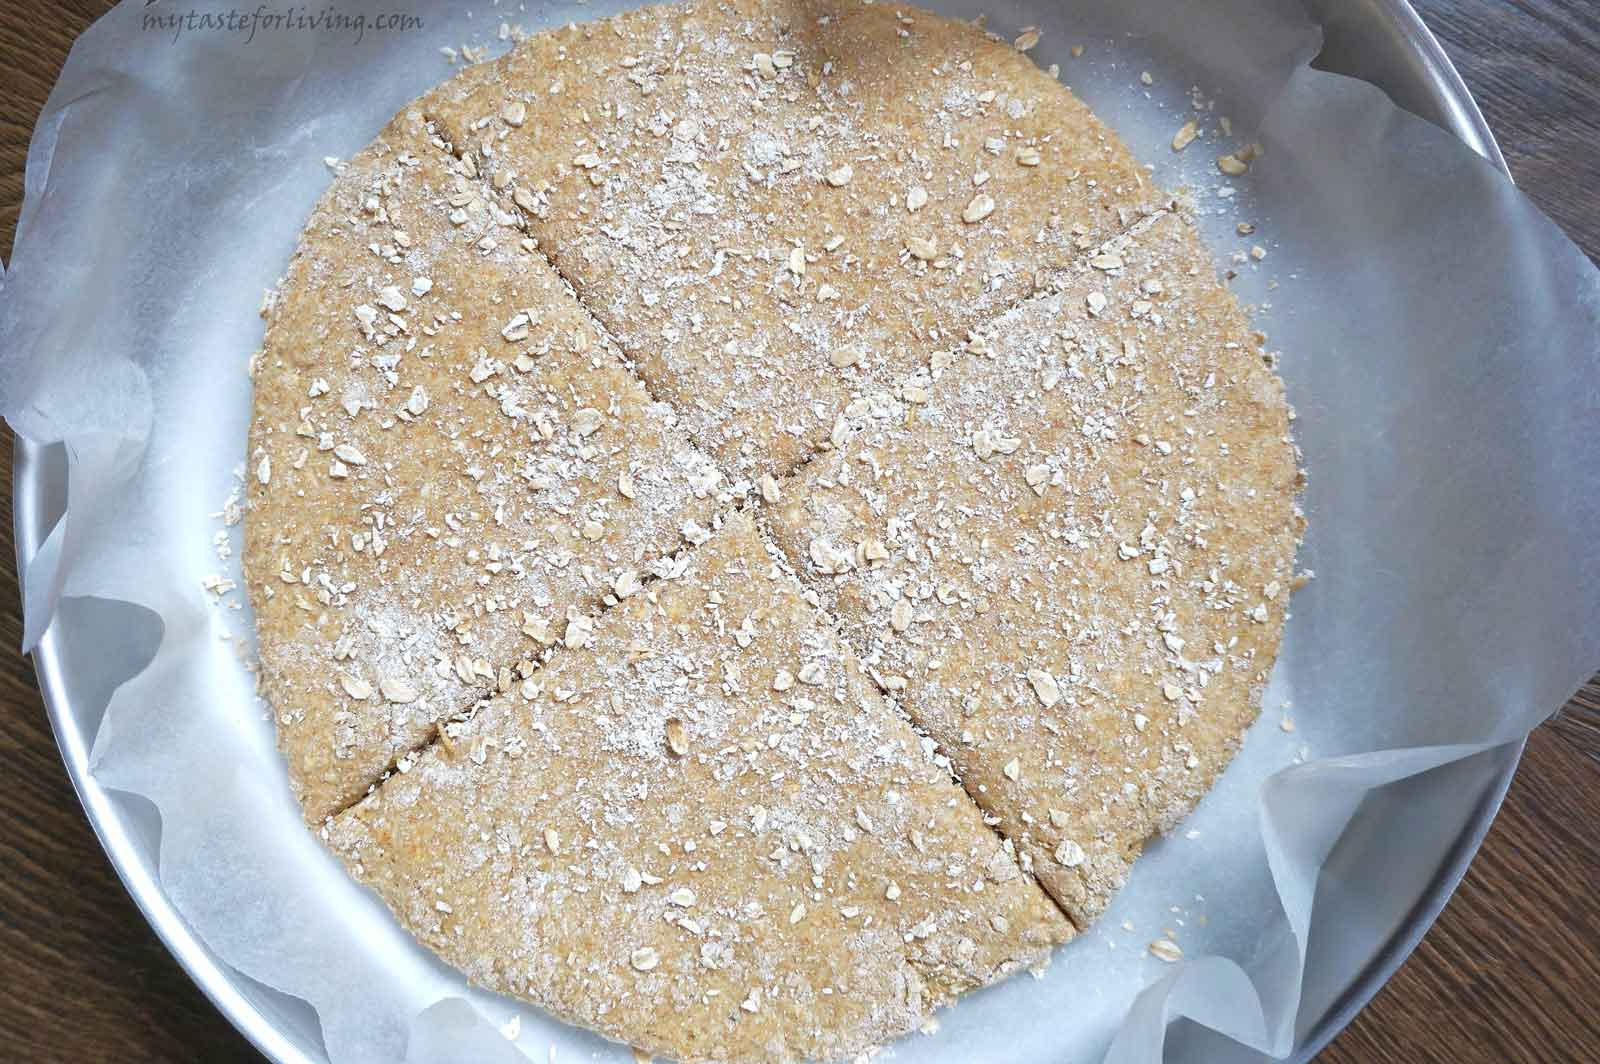 Dairy-free soda bread with einkorn flour and old fashioned rolled oats suitable for your table on Christmas Eve. Why with oats? They make the crust slightly crispy and enhance the aroma and taste that einkorn flour gives.